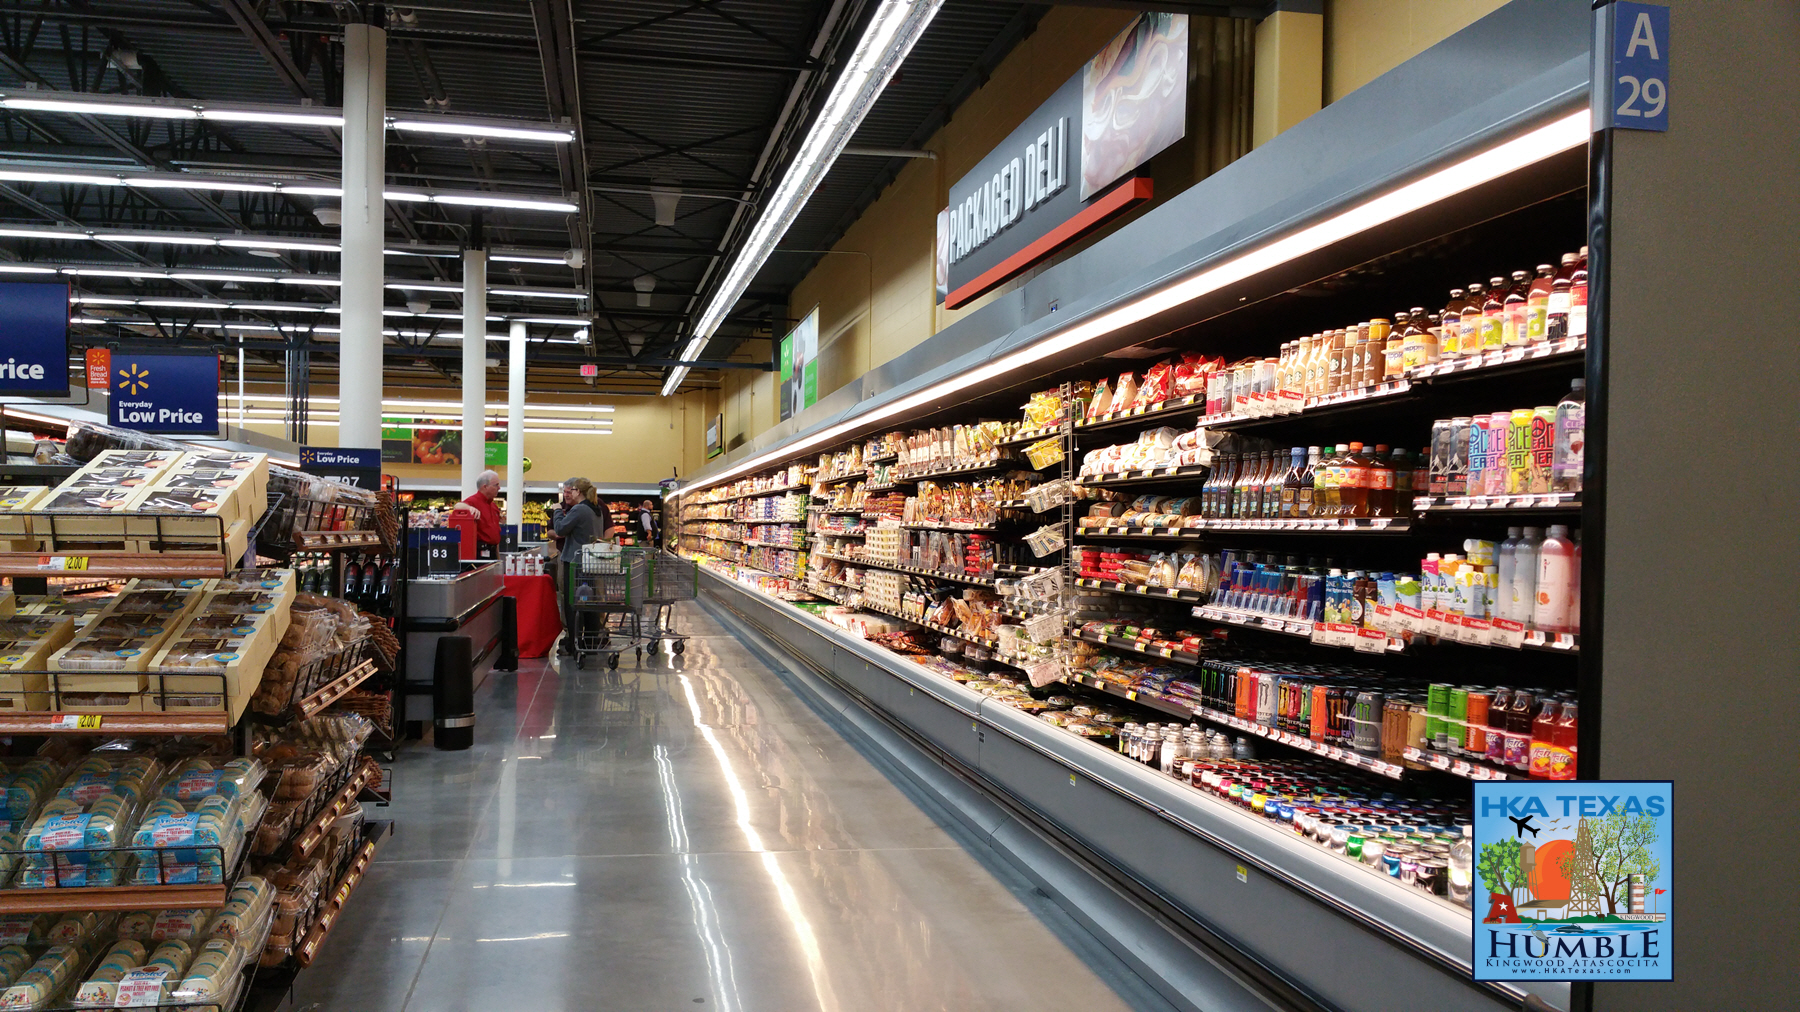 walmart target market Looking for the best walmart inc swot analysis in 2018 click here to find out walmart's strengths, weaknesses, opportunities and threats.